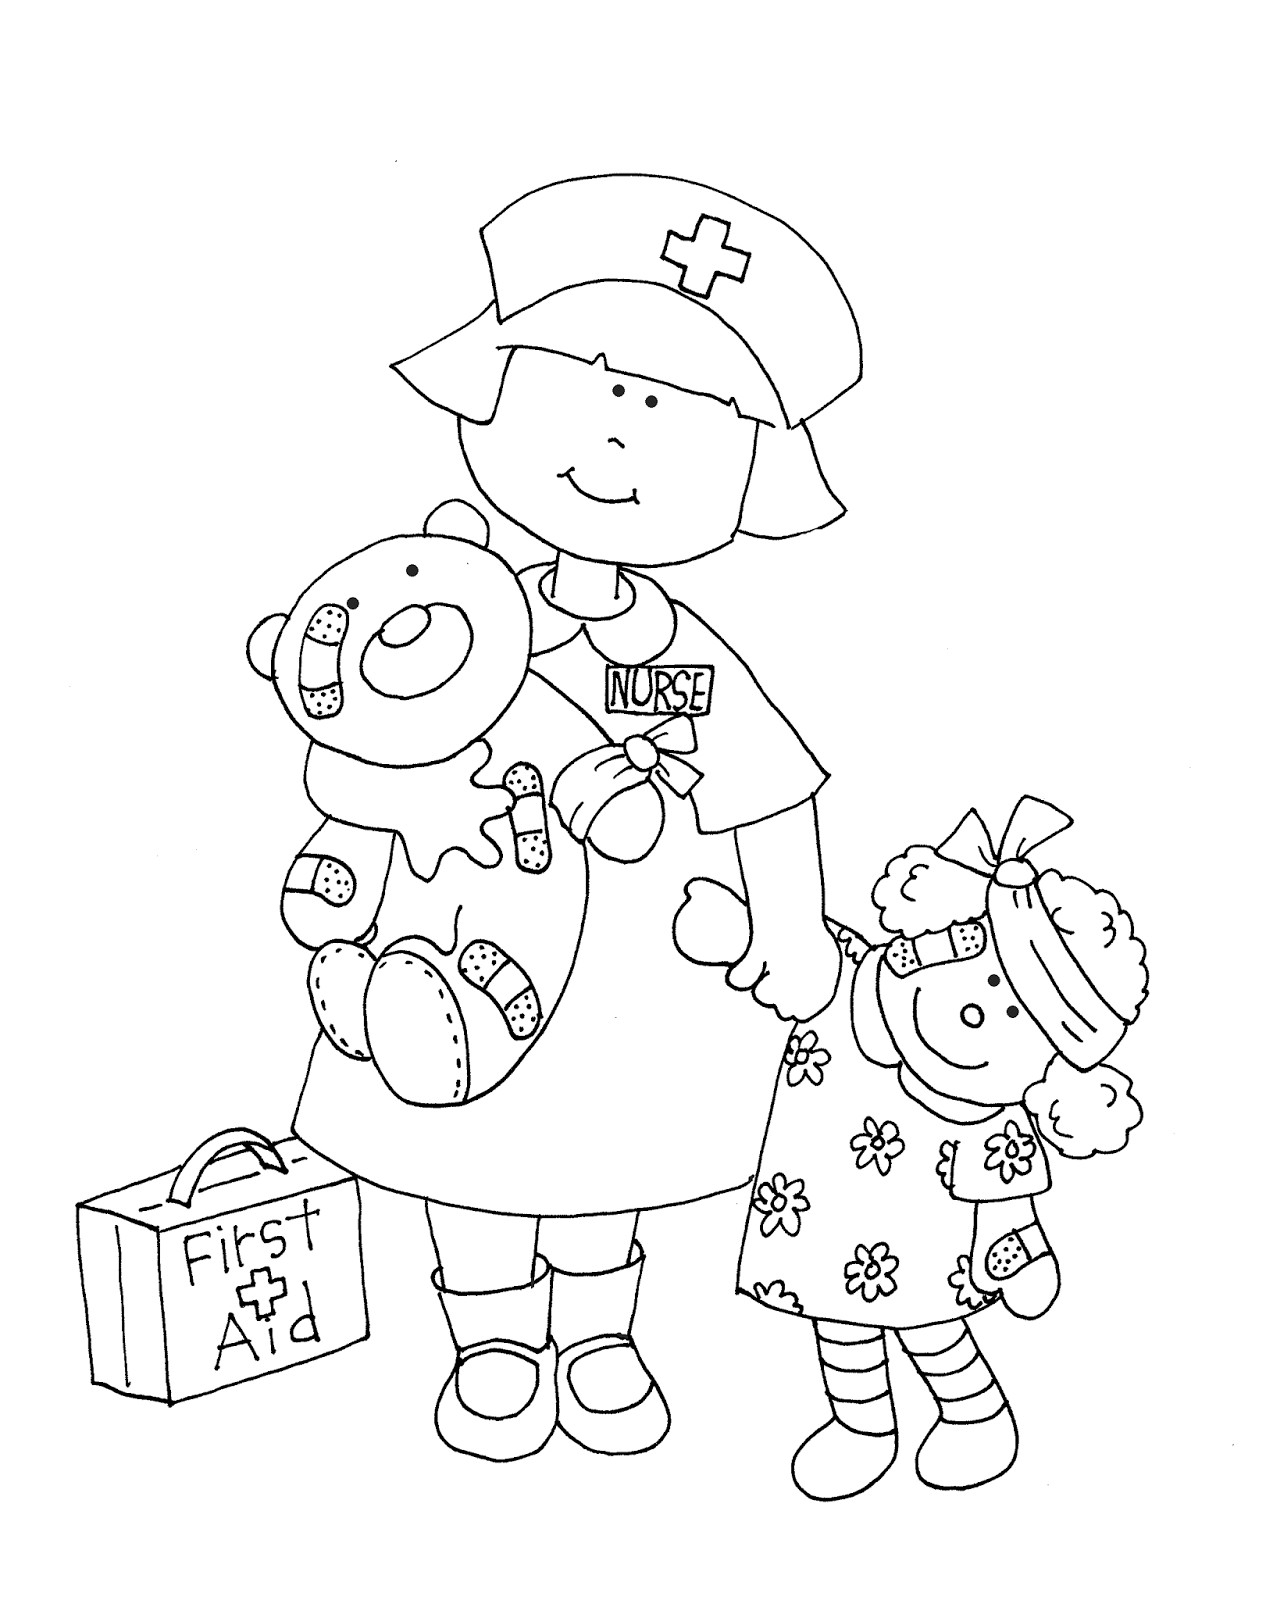 nurse coloring pages free pictures of nurses for kids download free clip art pages nurse coloring